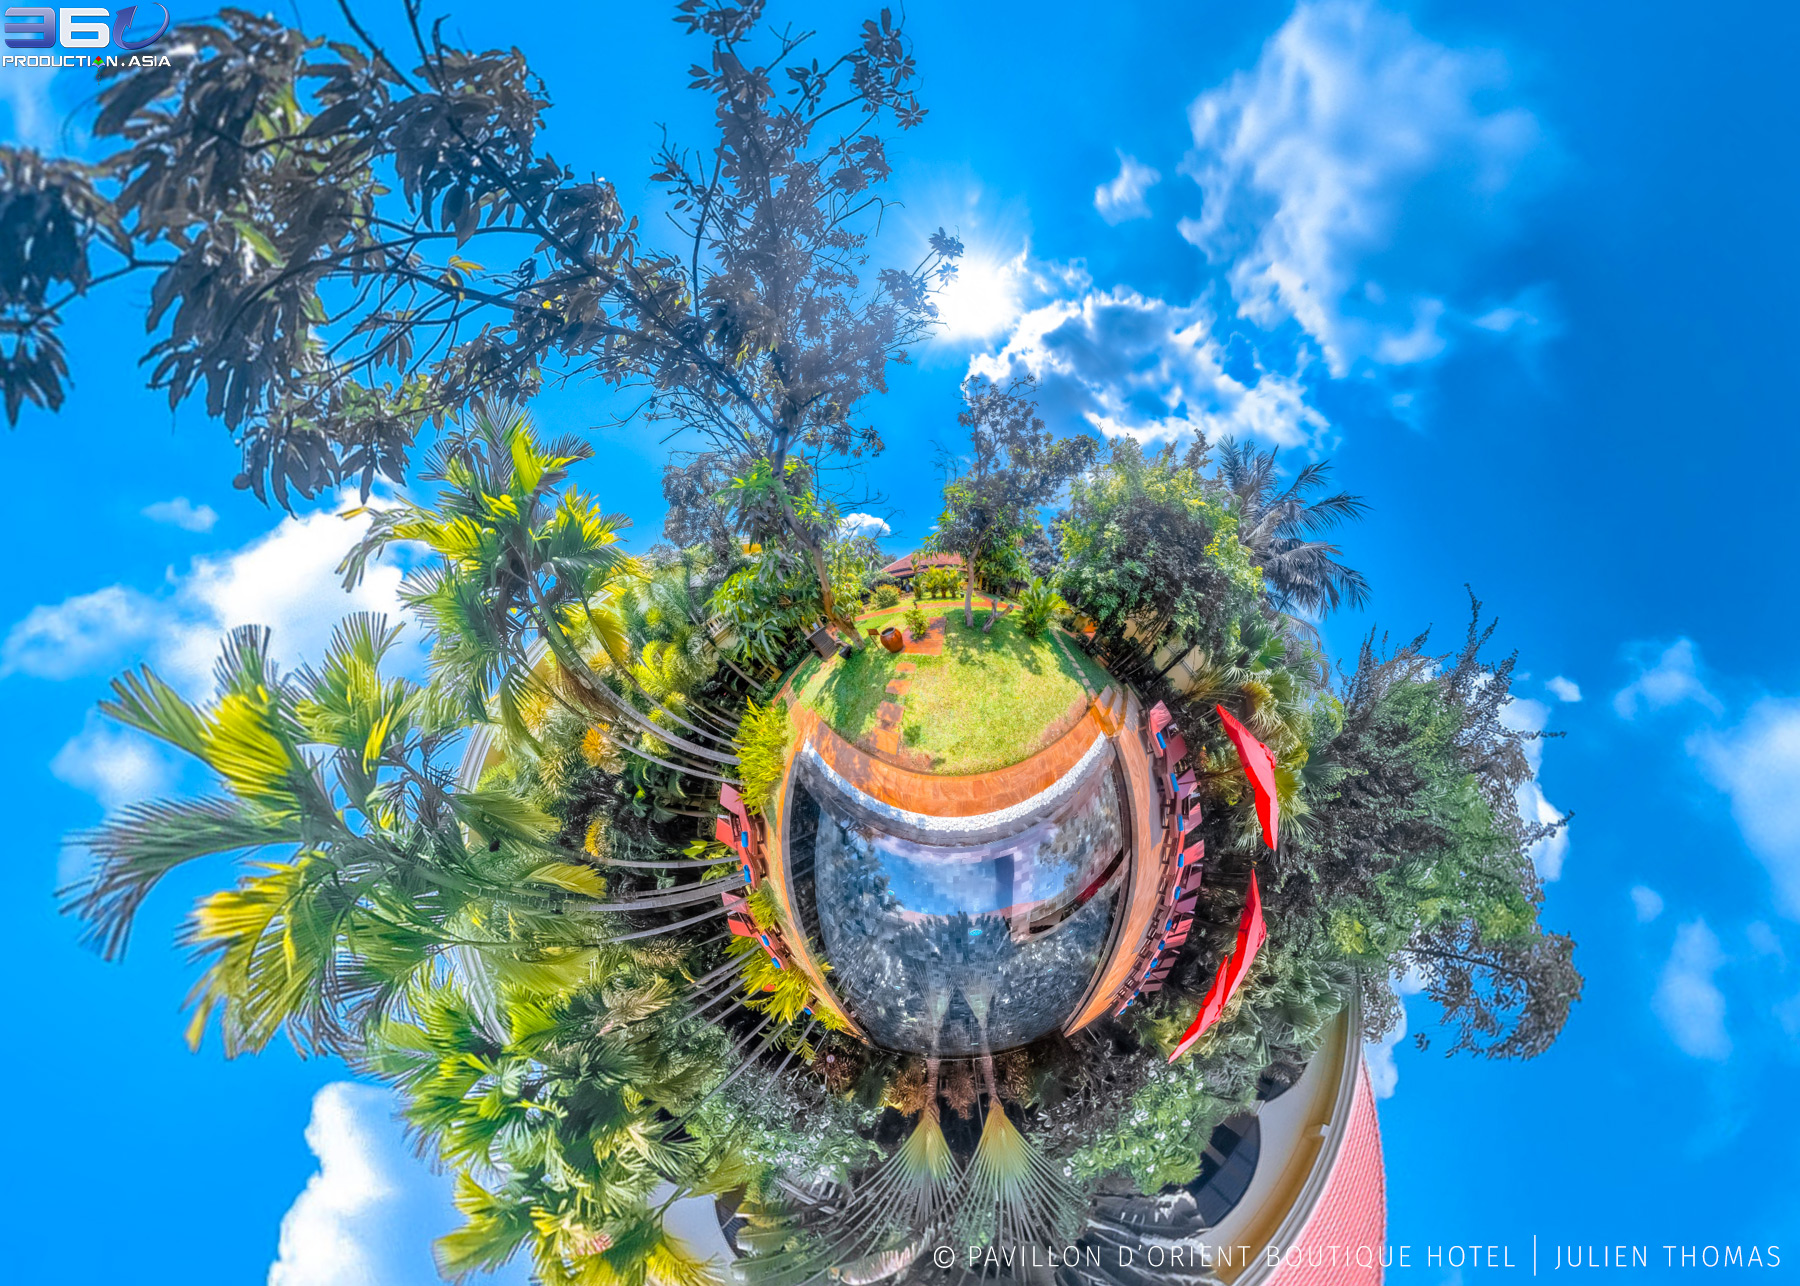 Mini World projection from 360 photo sphere in the garden and swimming pool area at Pavillon d'Orient Boutique Hotel, Siem Reap - Cambodia.